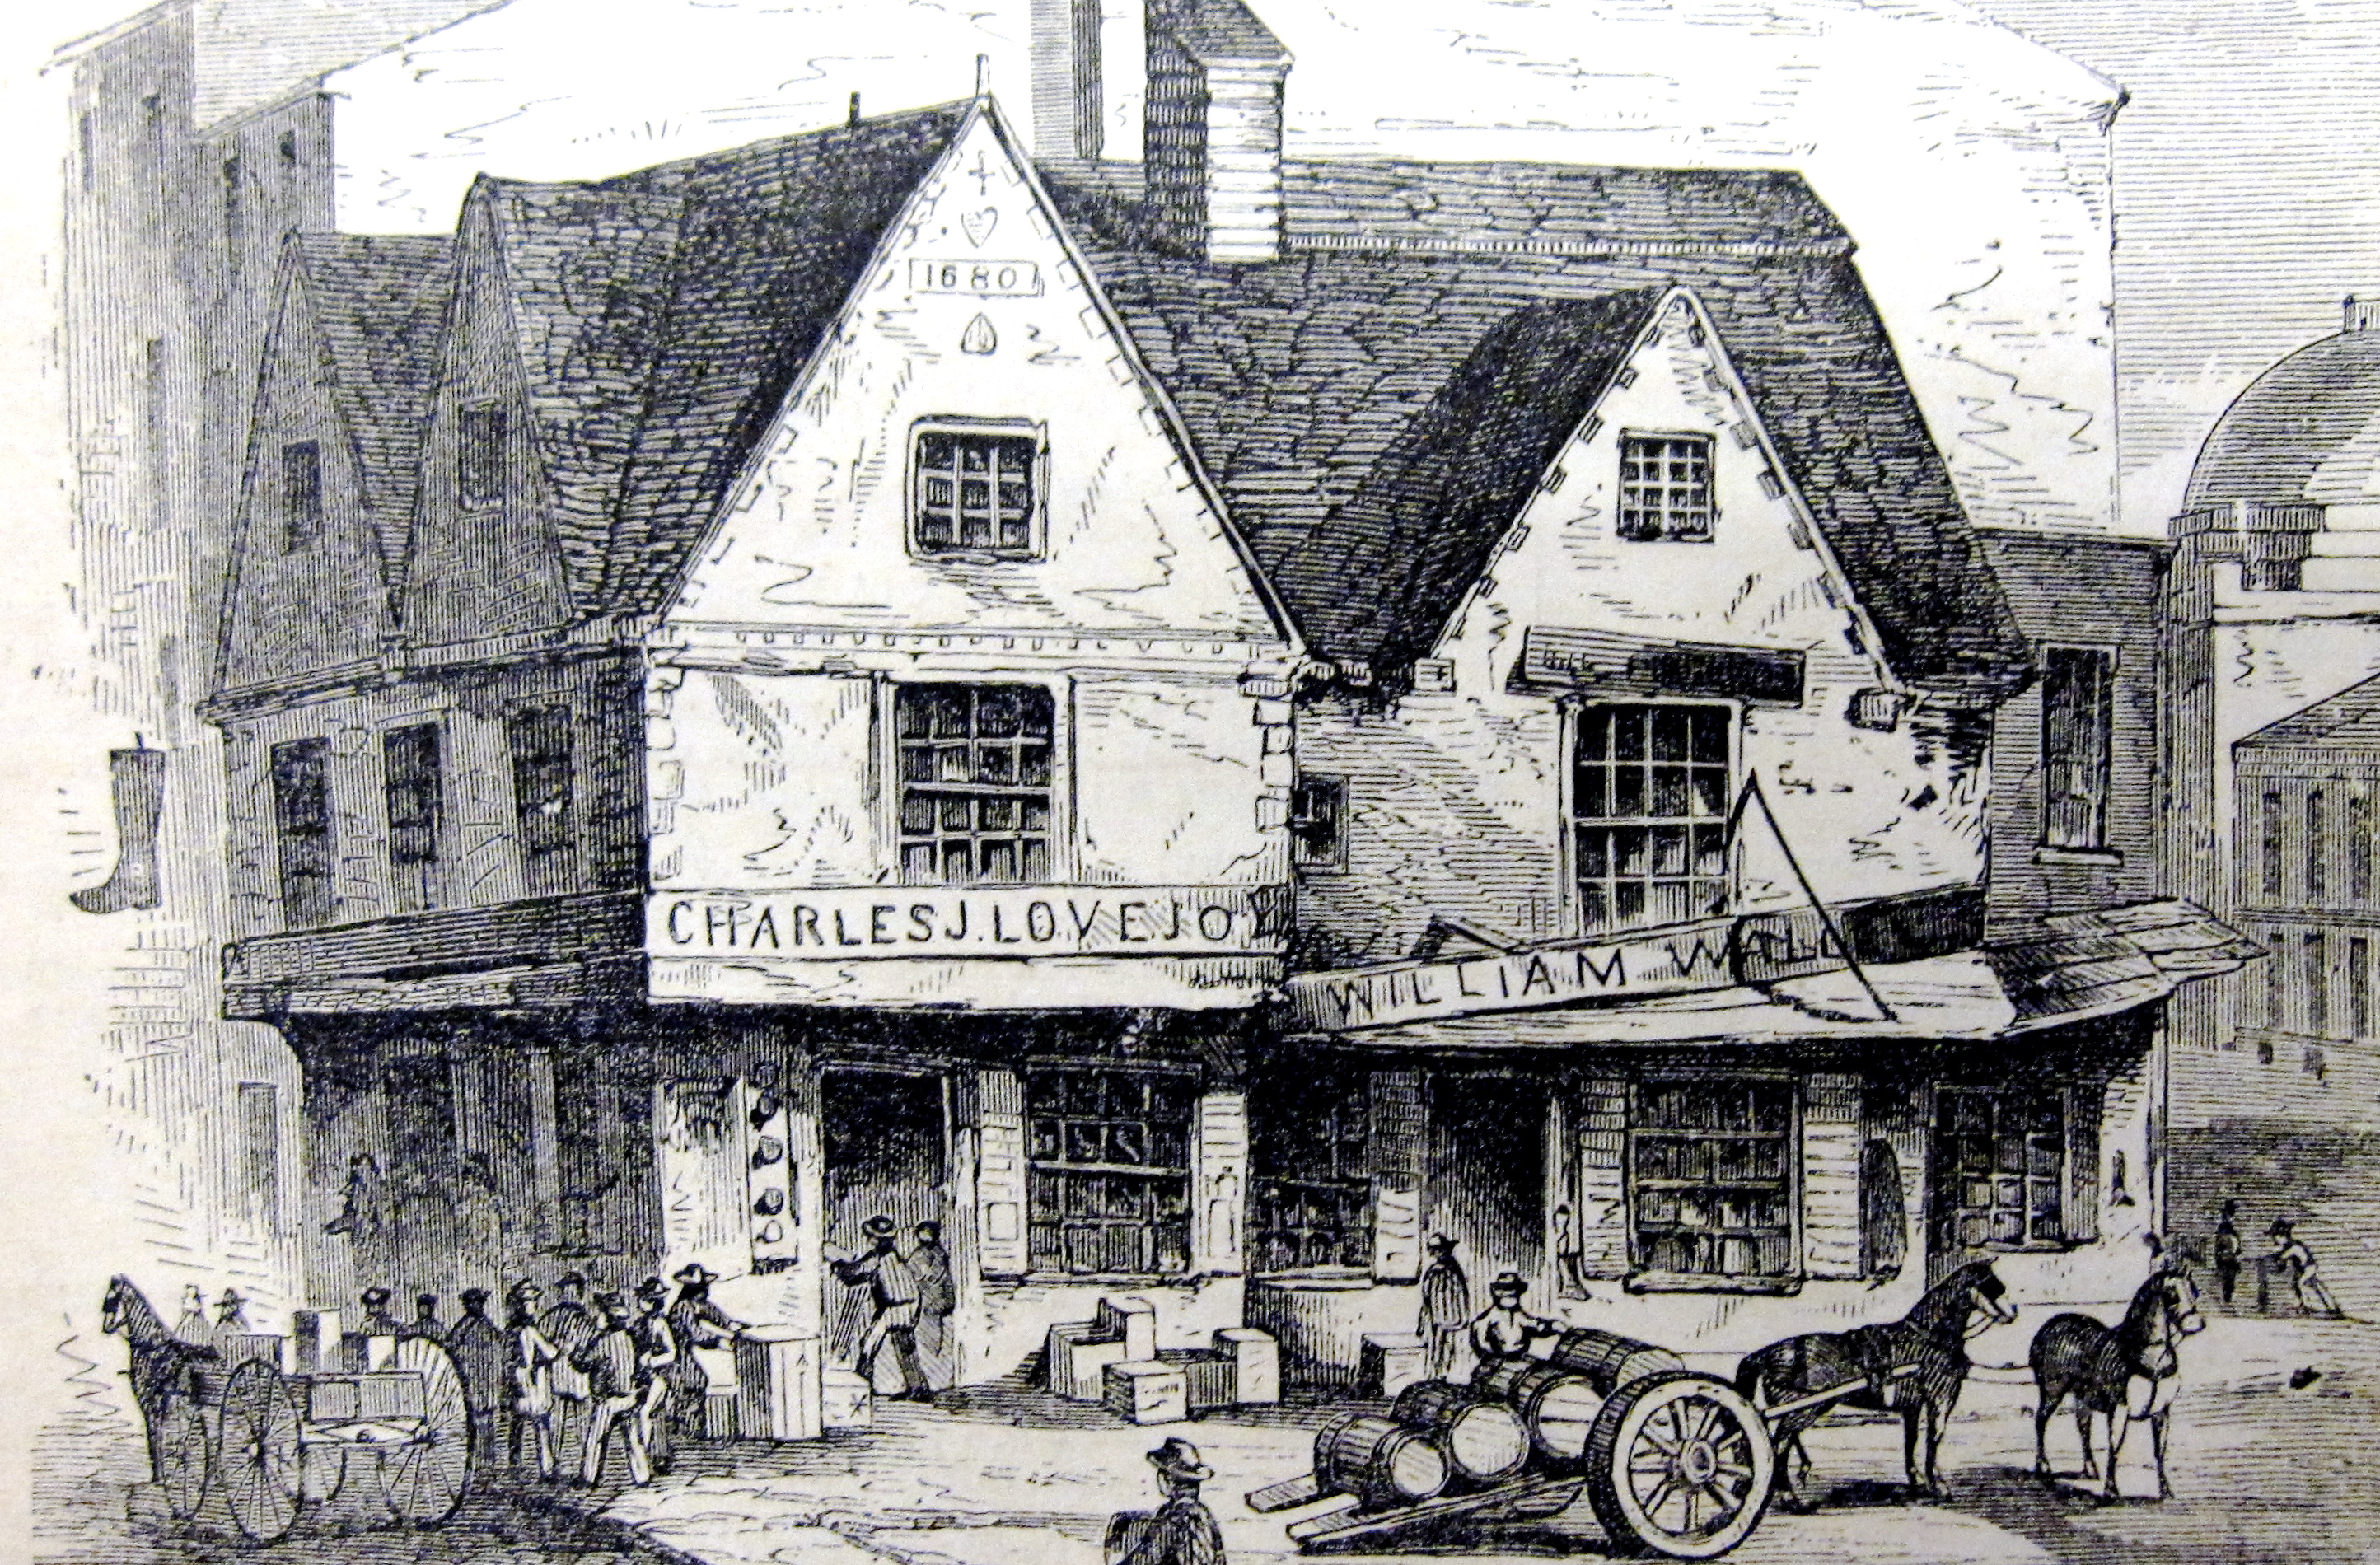 17th Century Boston with Nathaniel Hawthorne in The Scarlet Letter